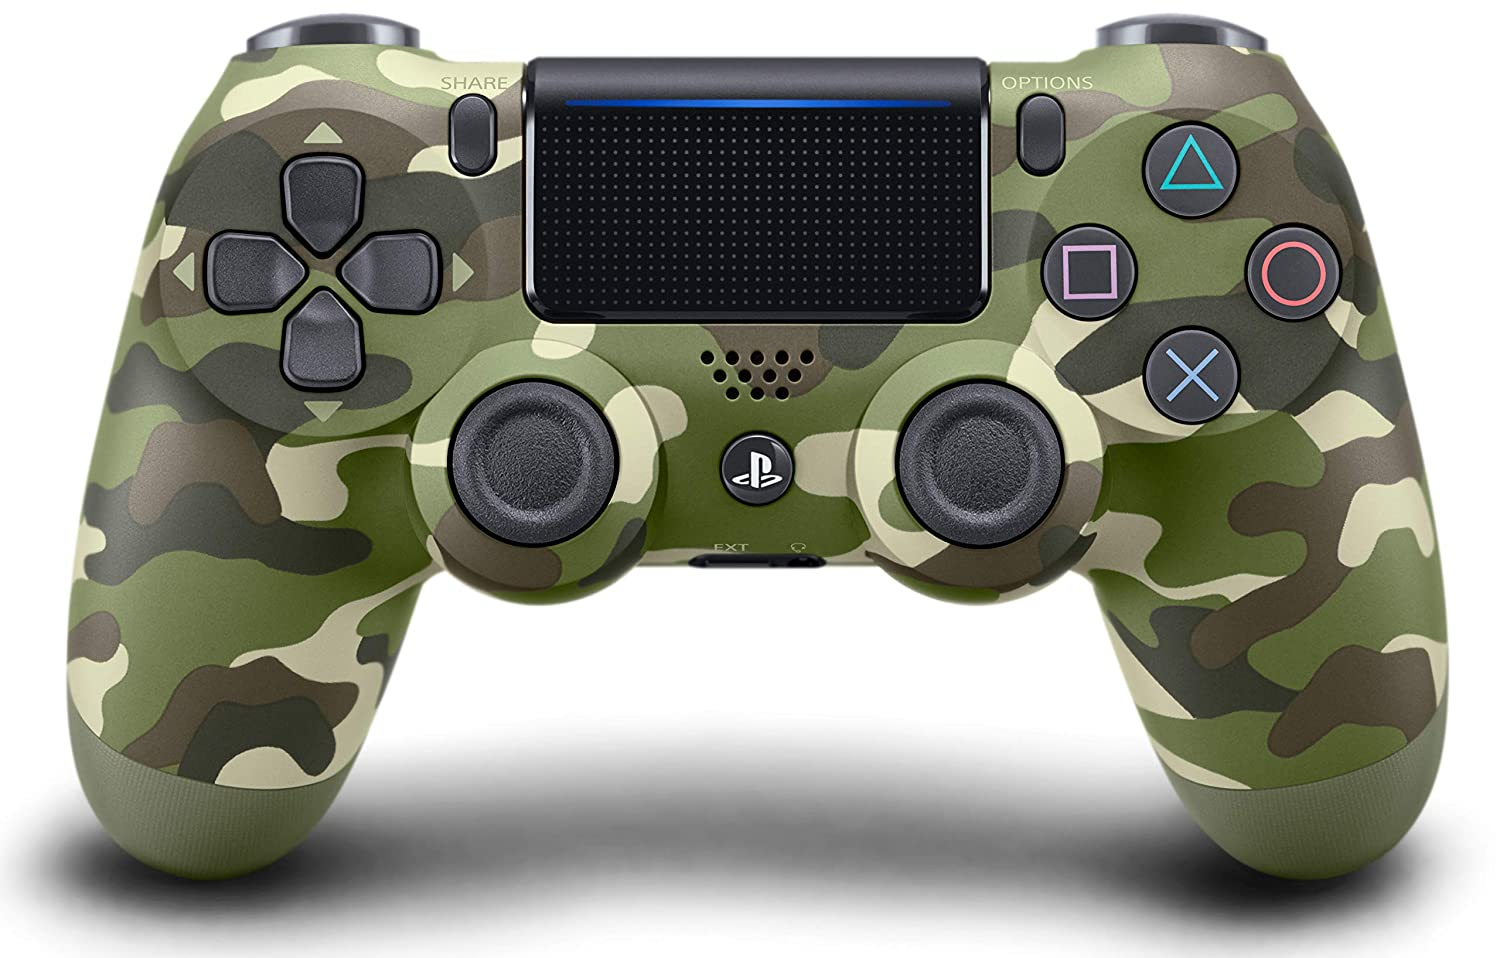 Dualshock 4 Wireless Controller For Playstation 4 Green